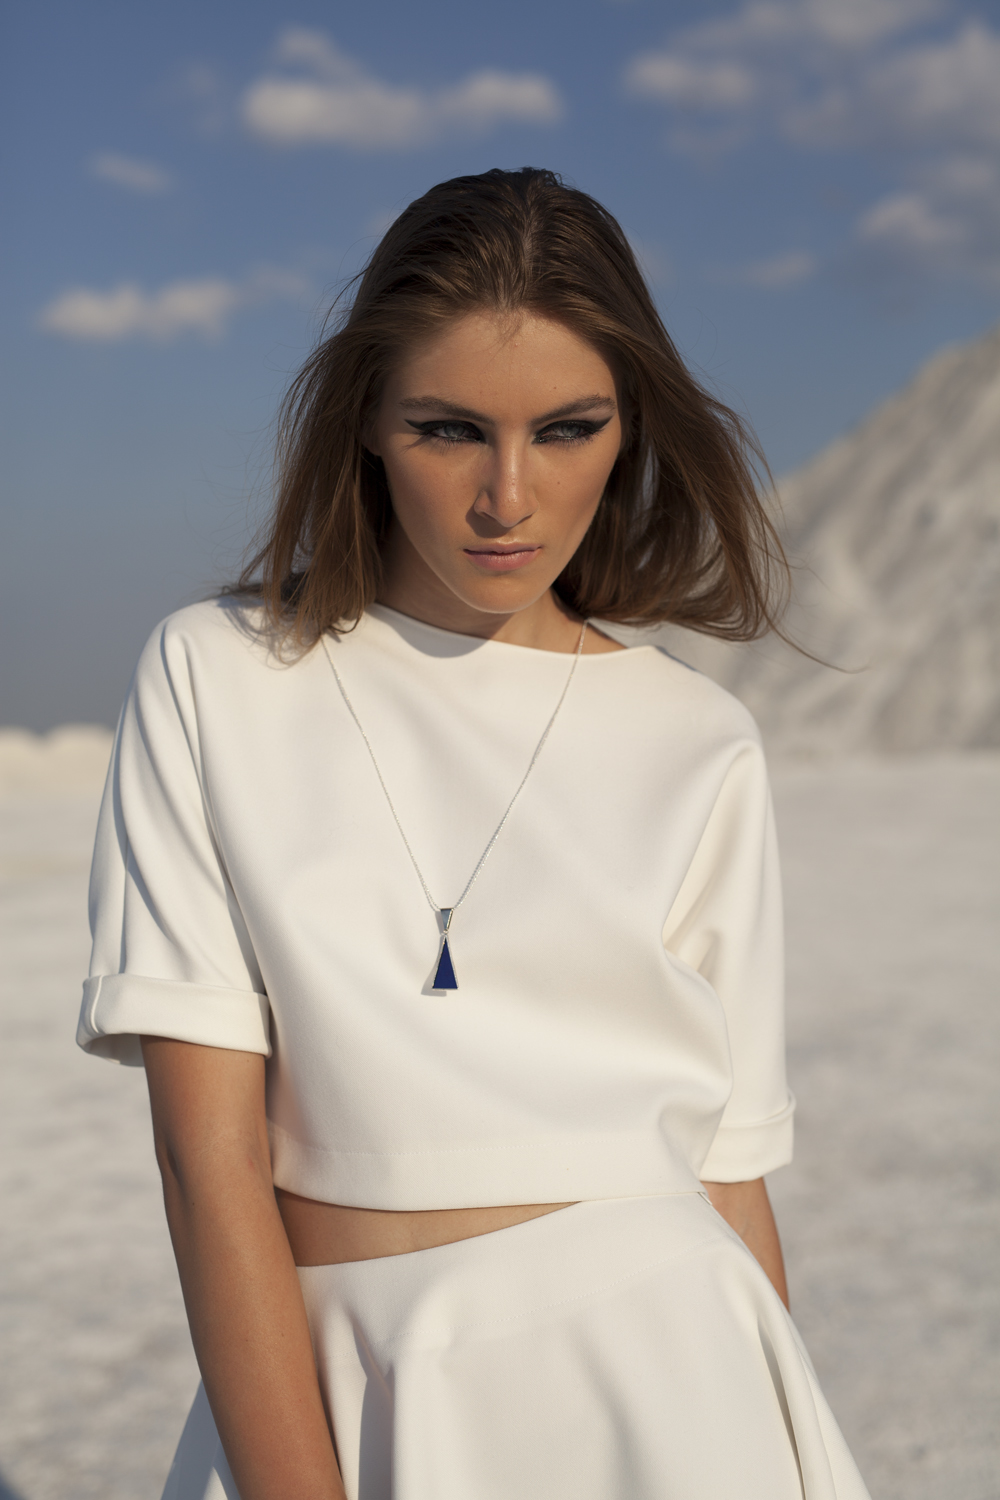 LAURA DAILI FASHION (4)